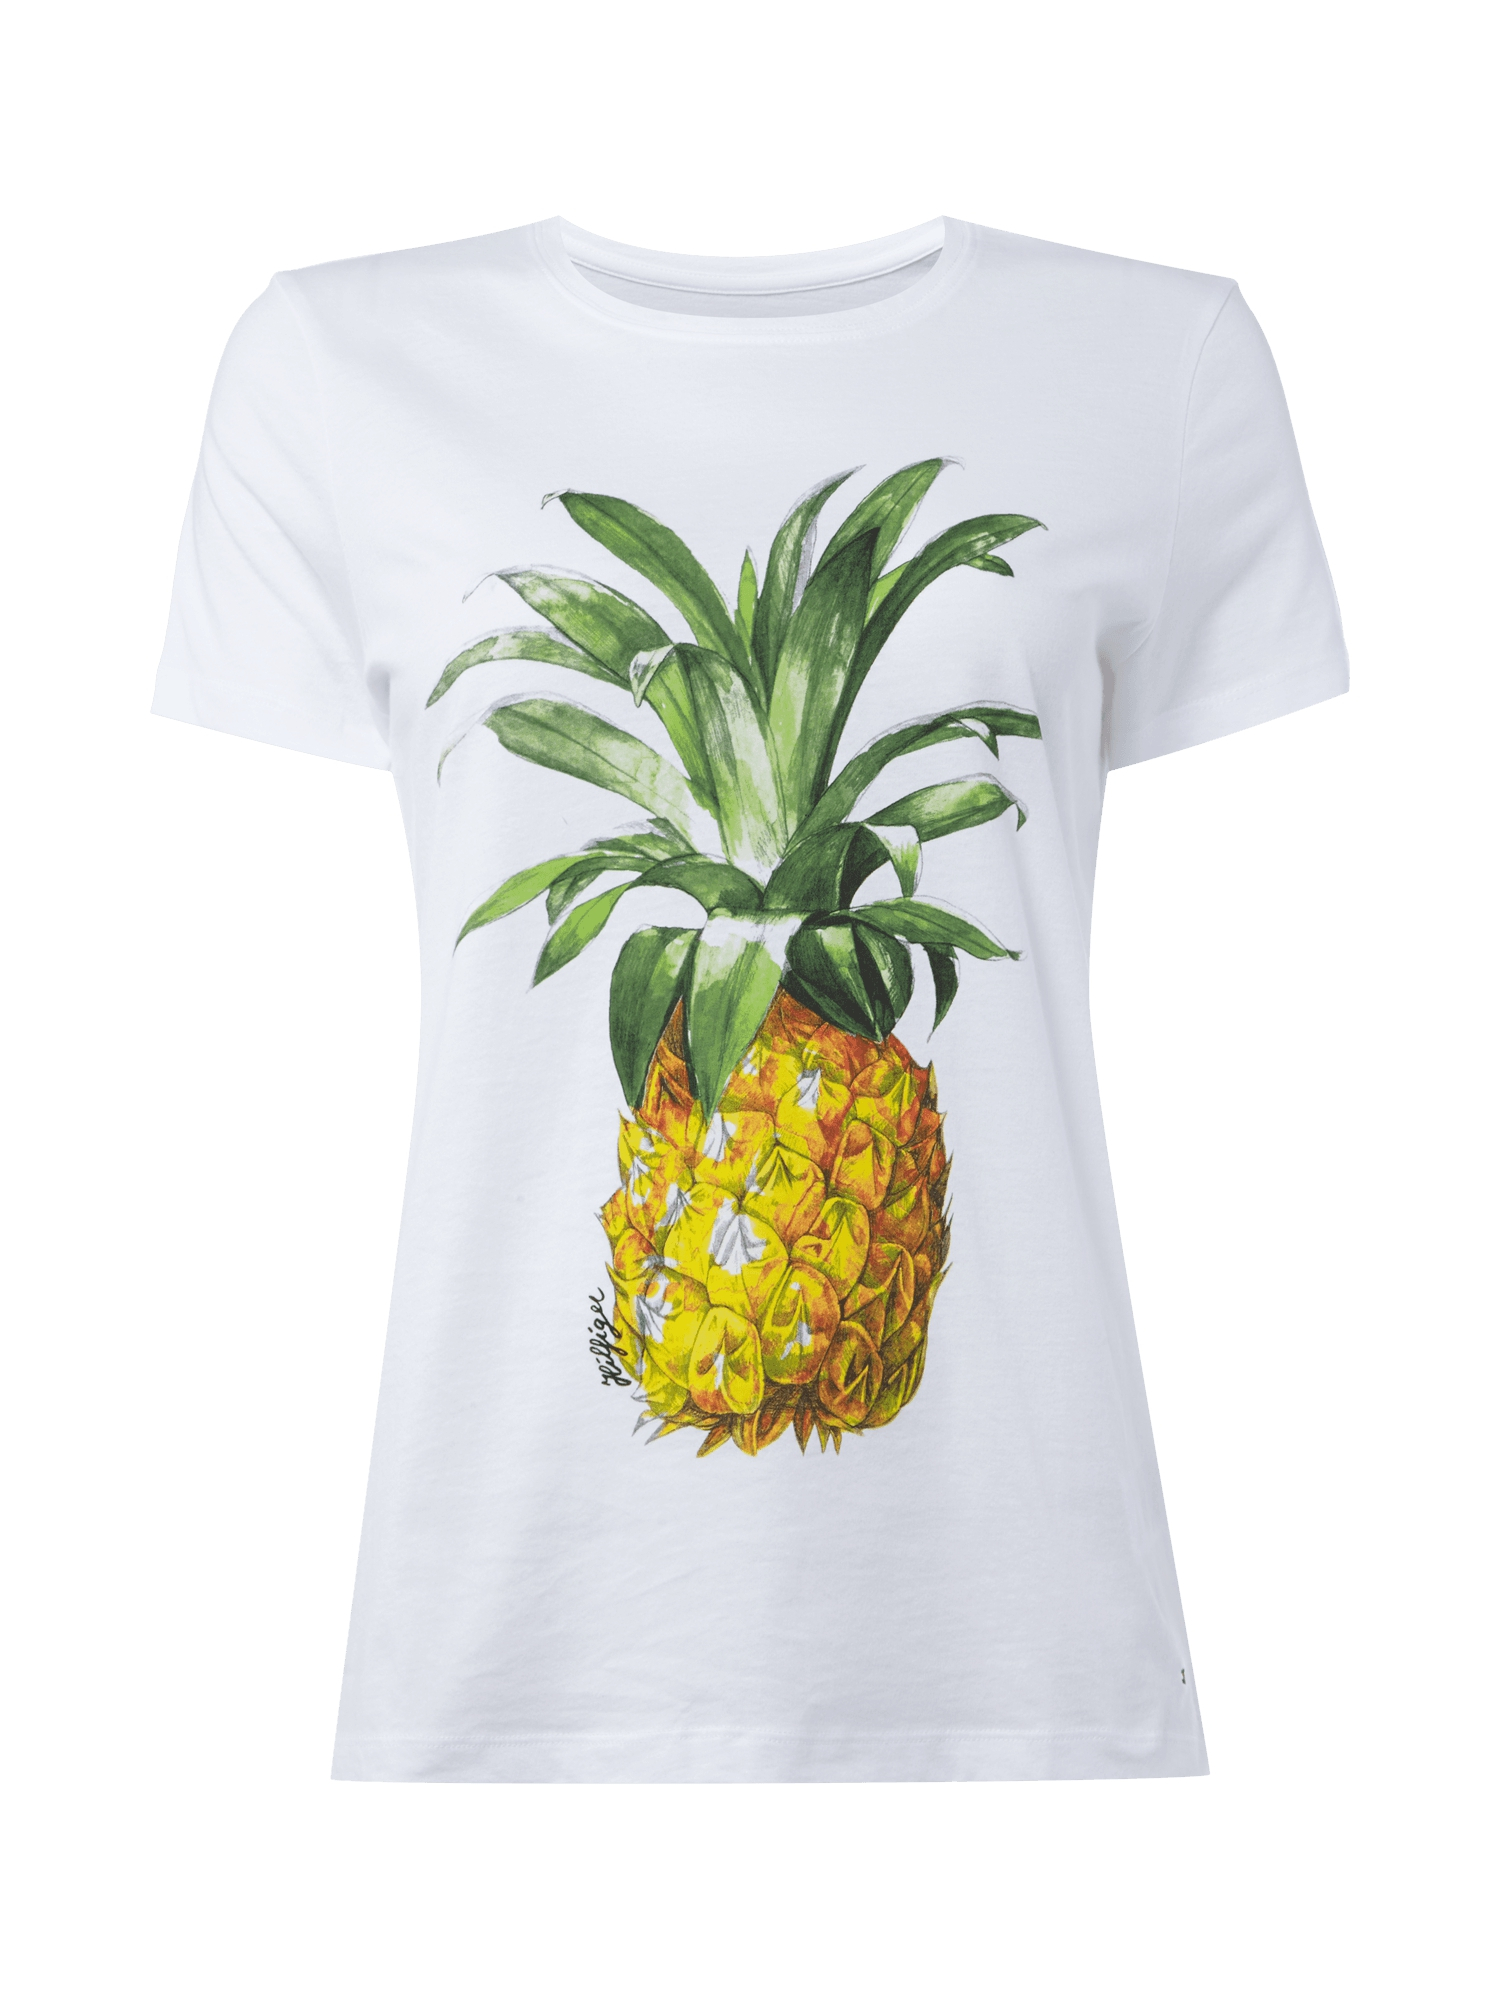 tommy hilfiger t shirt mit ananas print damen t shirt neu ebay. Black Bedroom Furniture Sets. Home Design Ideas